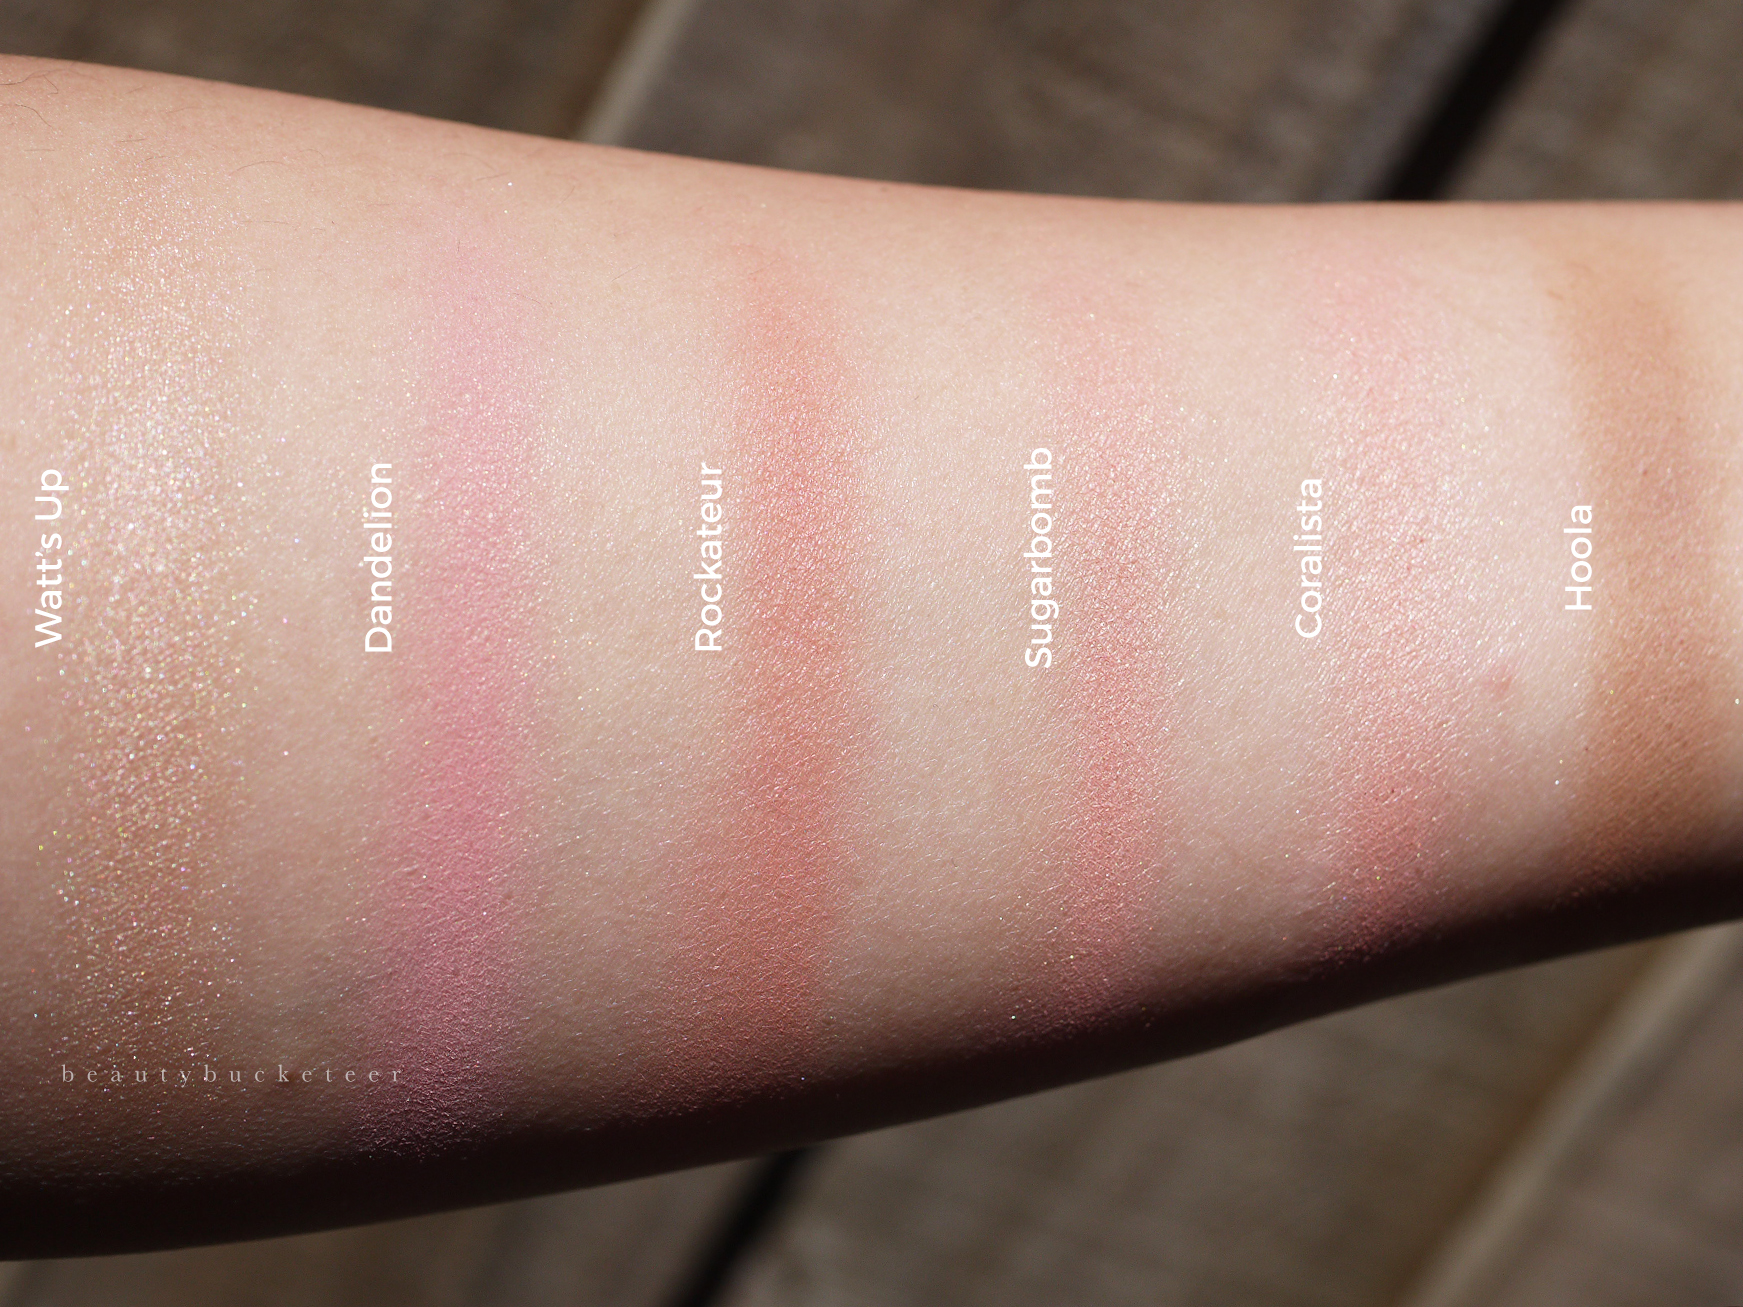 L - R: Benefit Watt's Up, Dandelion, Roackateur, Sugarbomb, Coralista & Hoola Swatches.